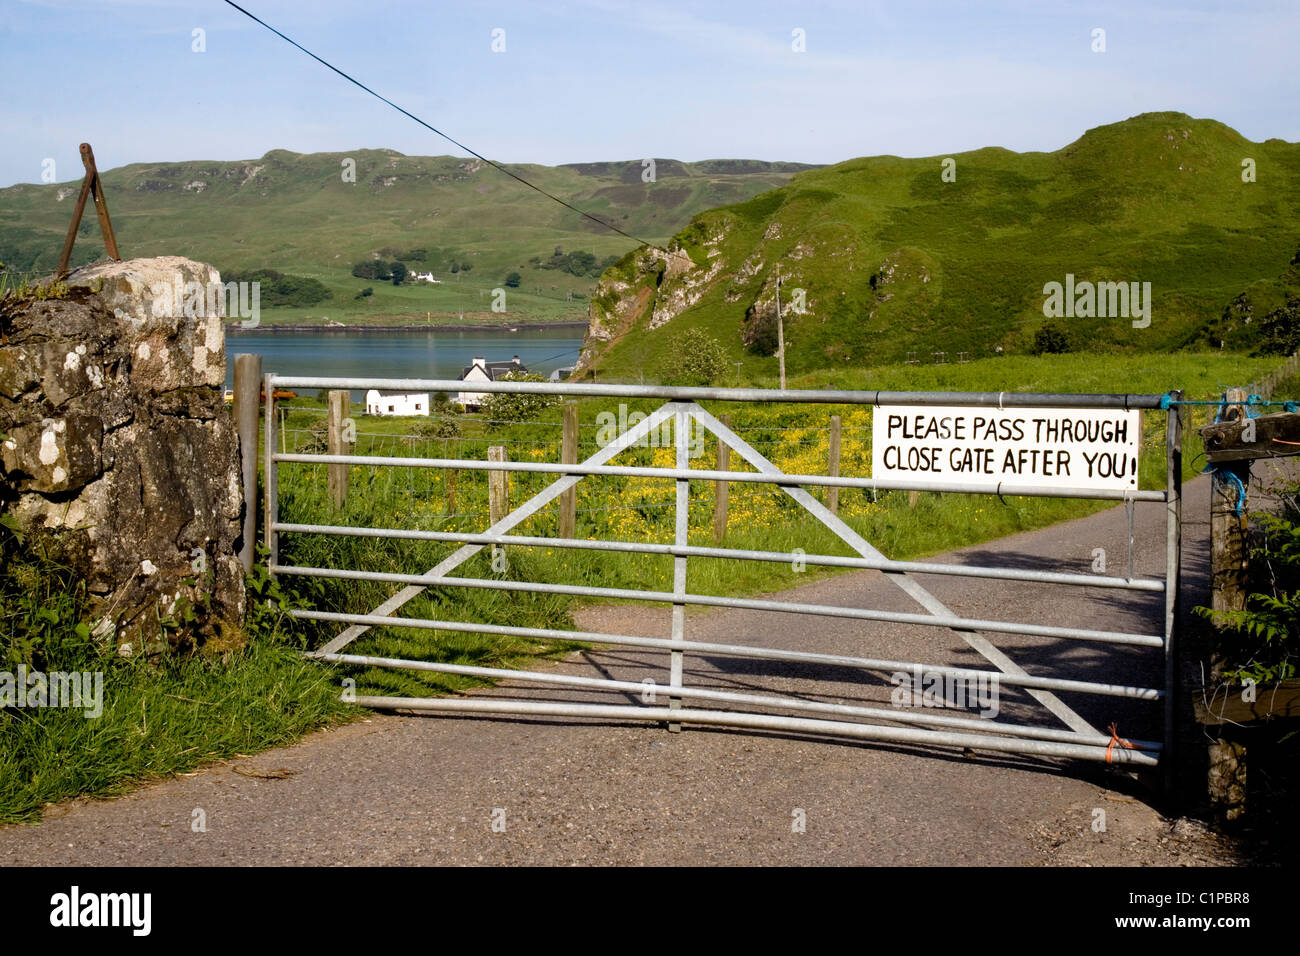 Scotland, Oban, countryside and sign on closed gate - Stock Image